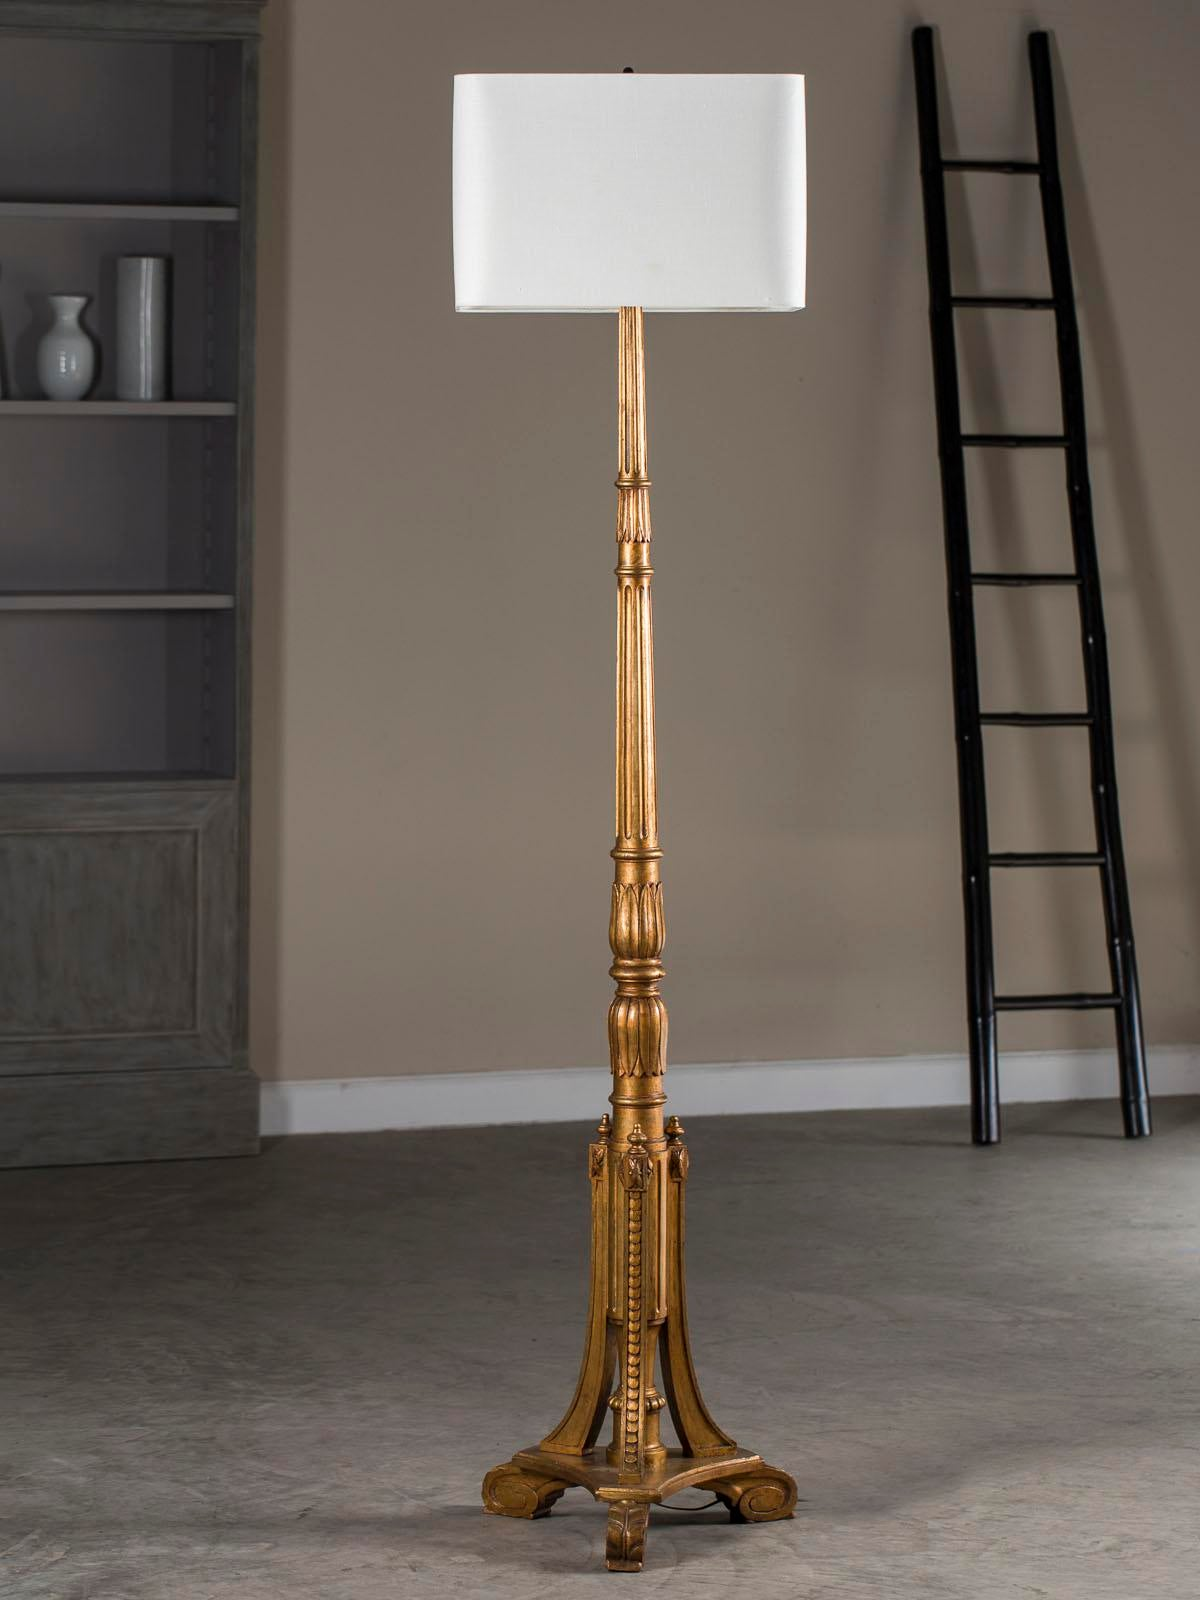 Antique french gilt wood candlestand floor lamp circa 1900 image 10 of 10